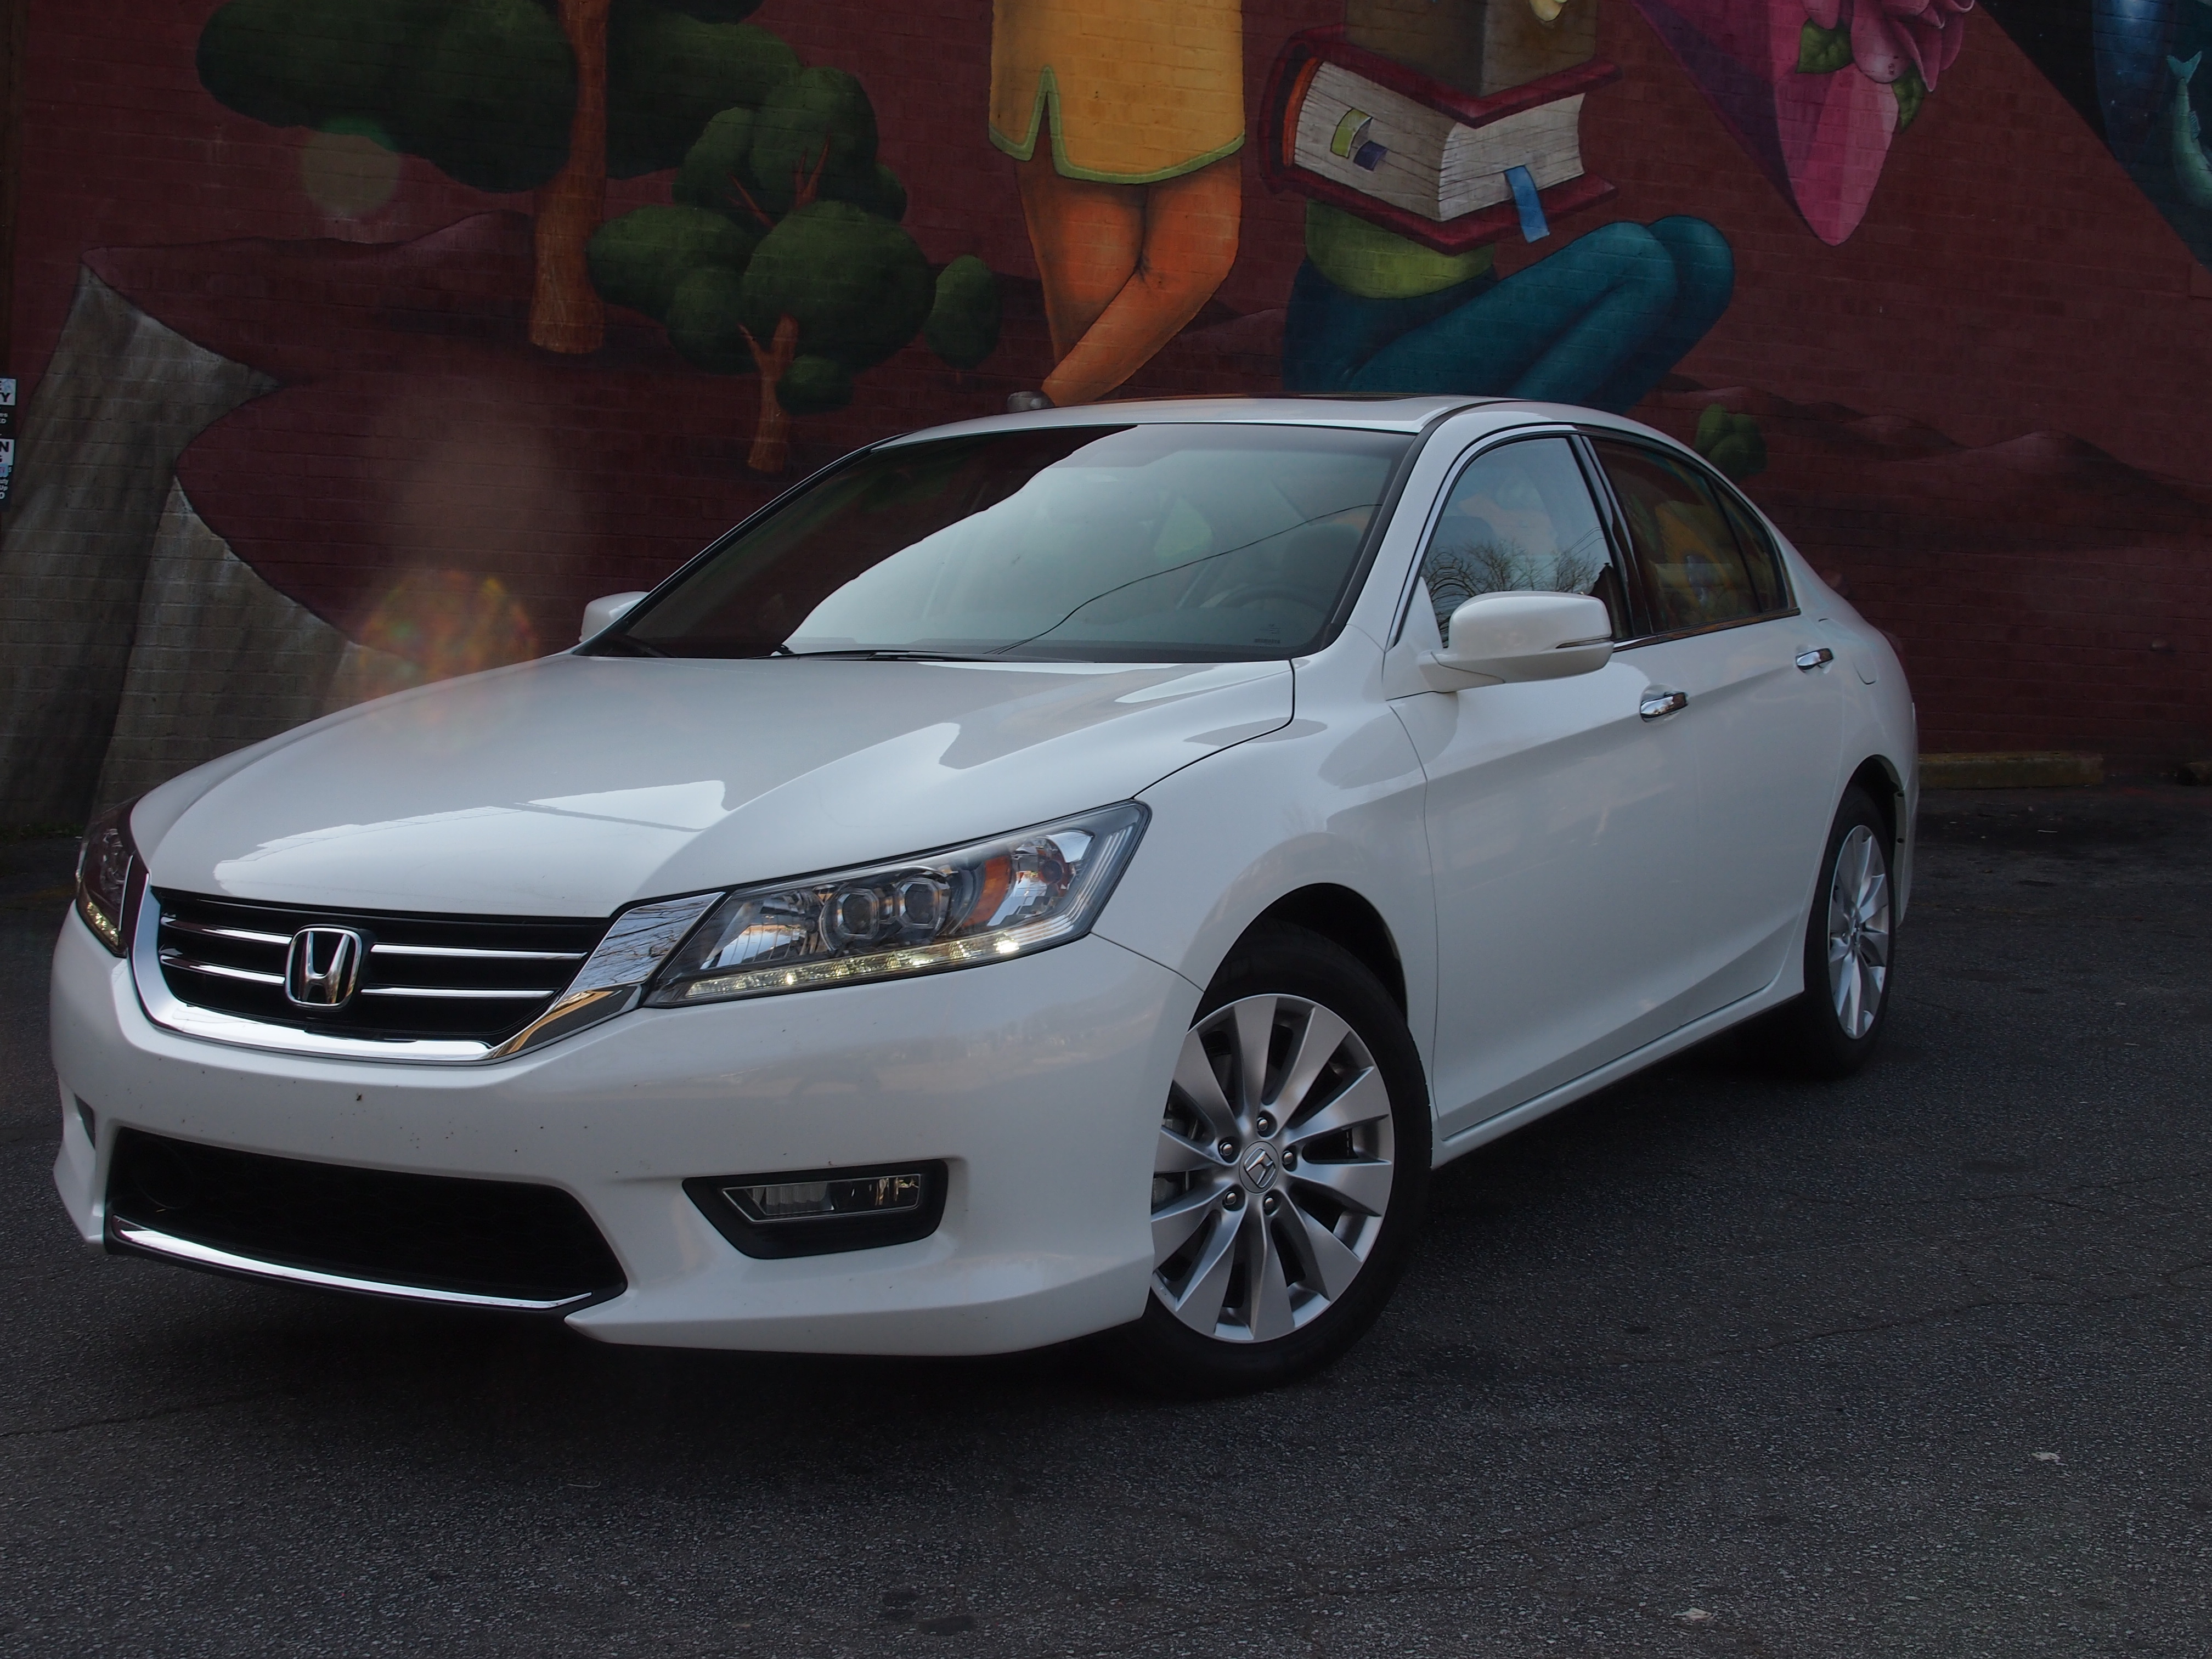 The Amazing New Honda Accord